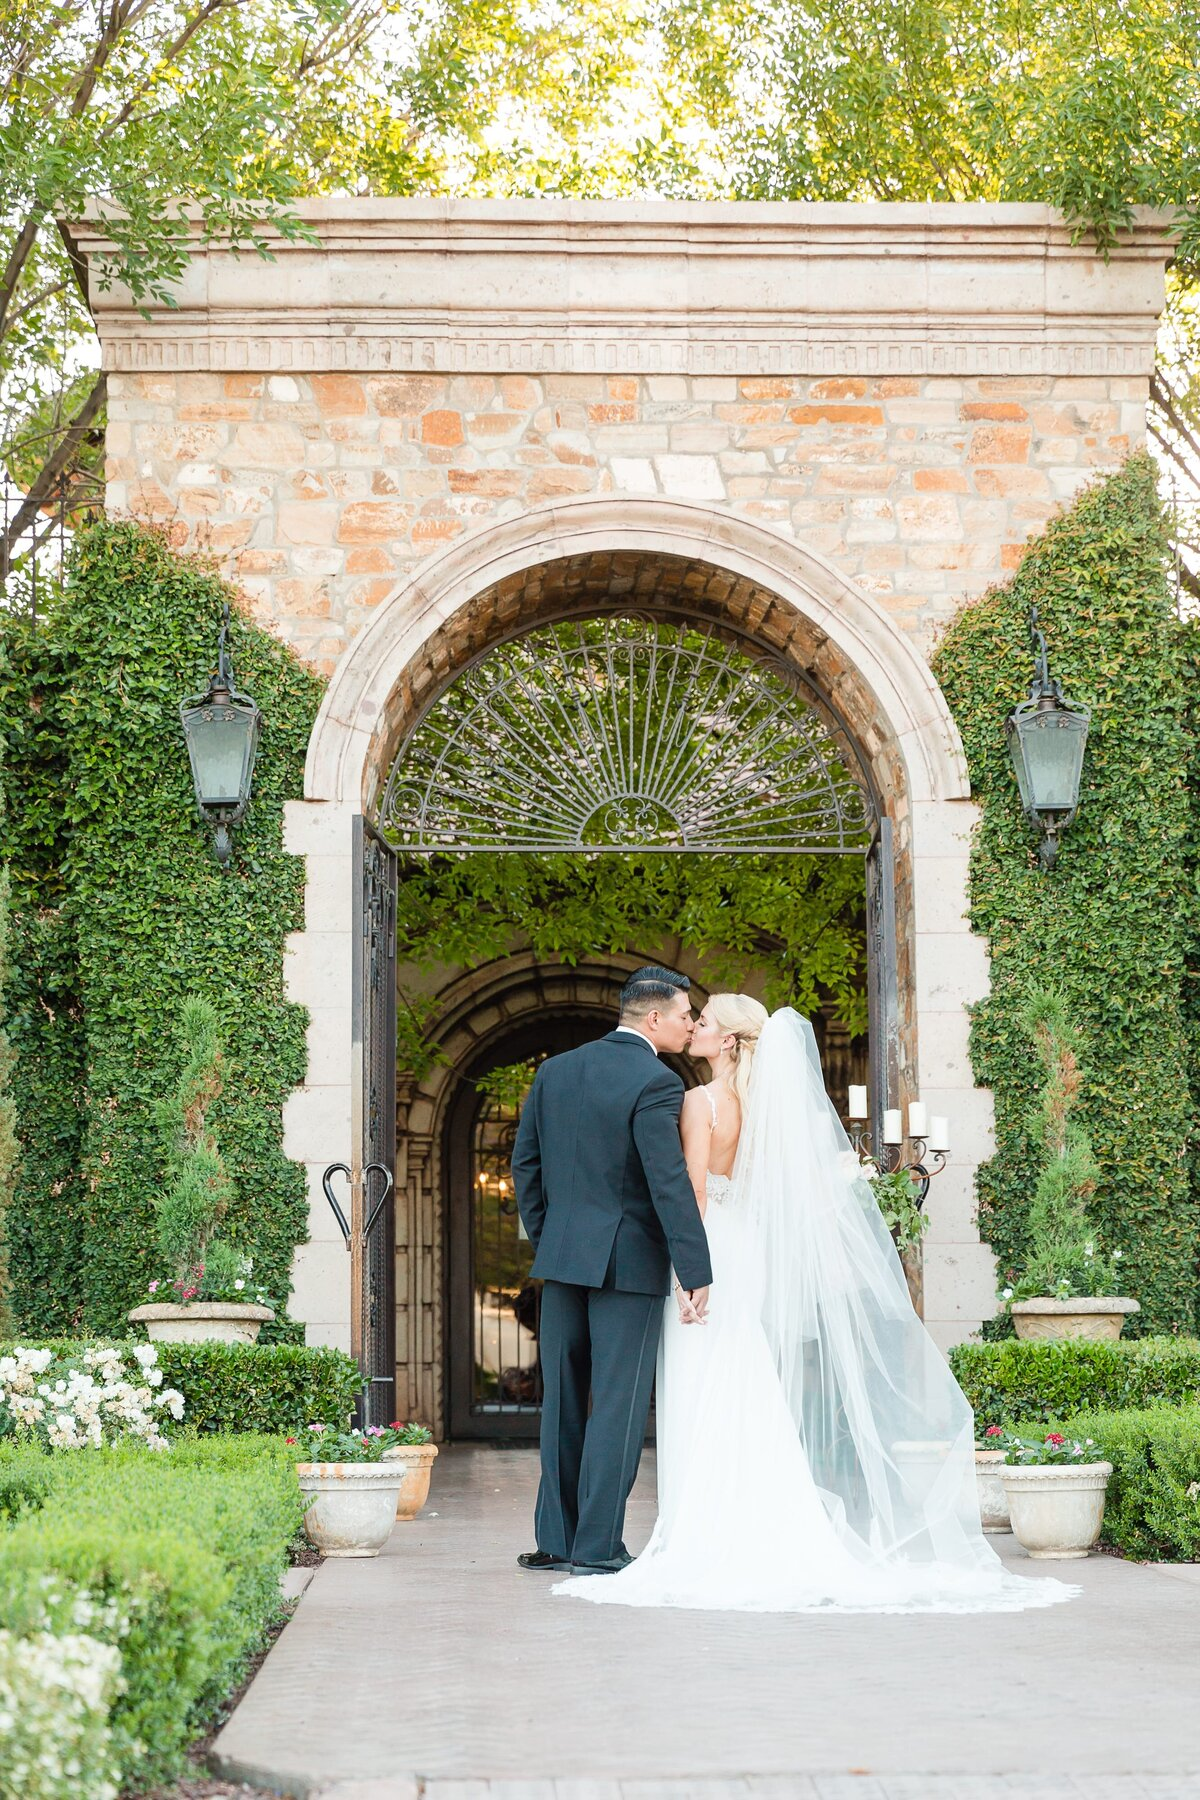 Villa-Siena-Wedding-by-Leslie-Ann-Photography-00041